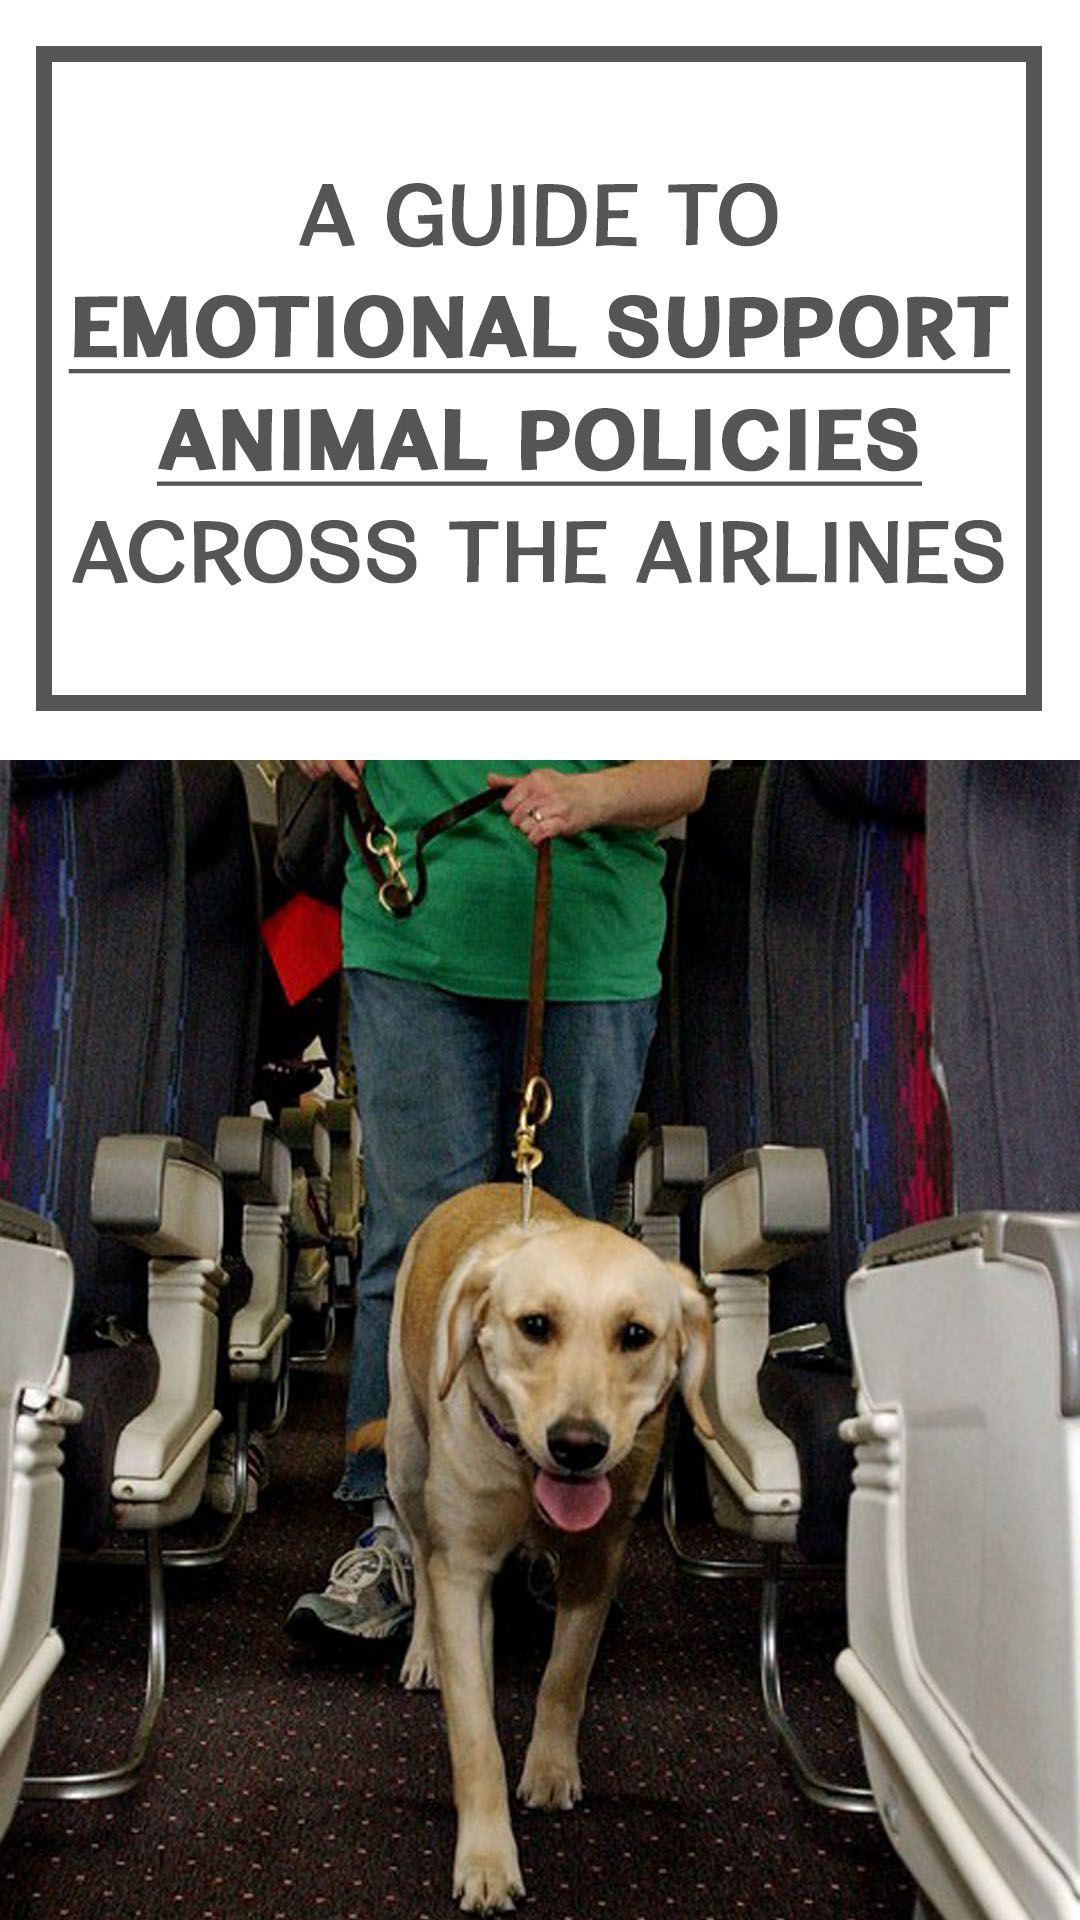 A complete guide to airline policy on emotional support